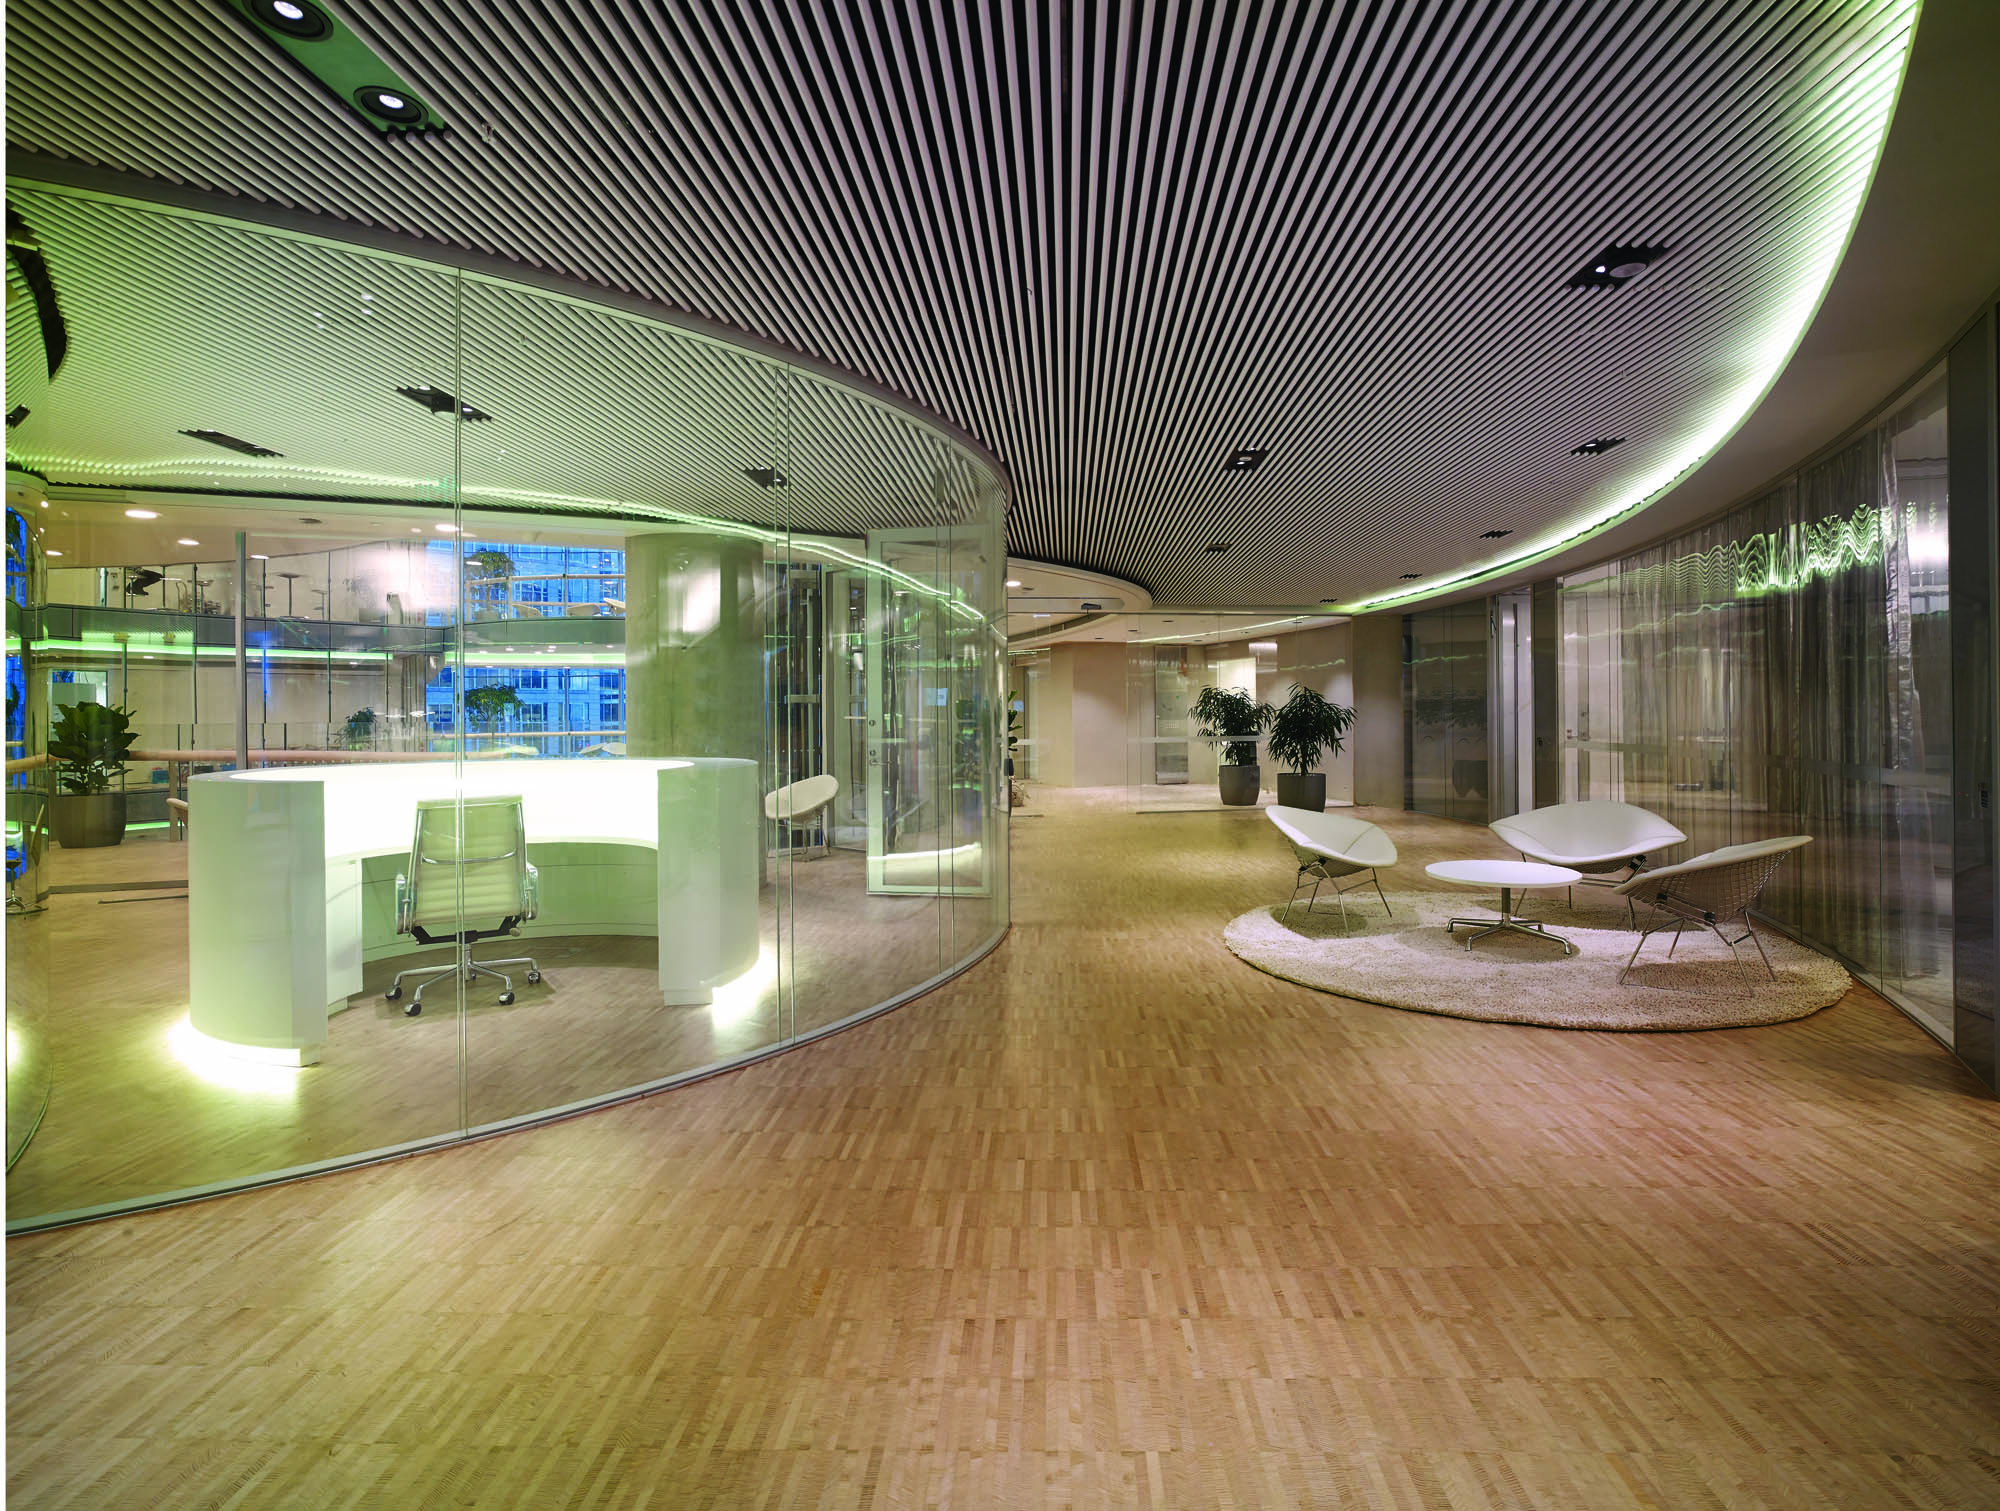 commonwealth parliament office sydney construction fitout curved glass ceiling battens seating collaborate waiting